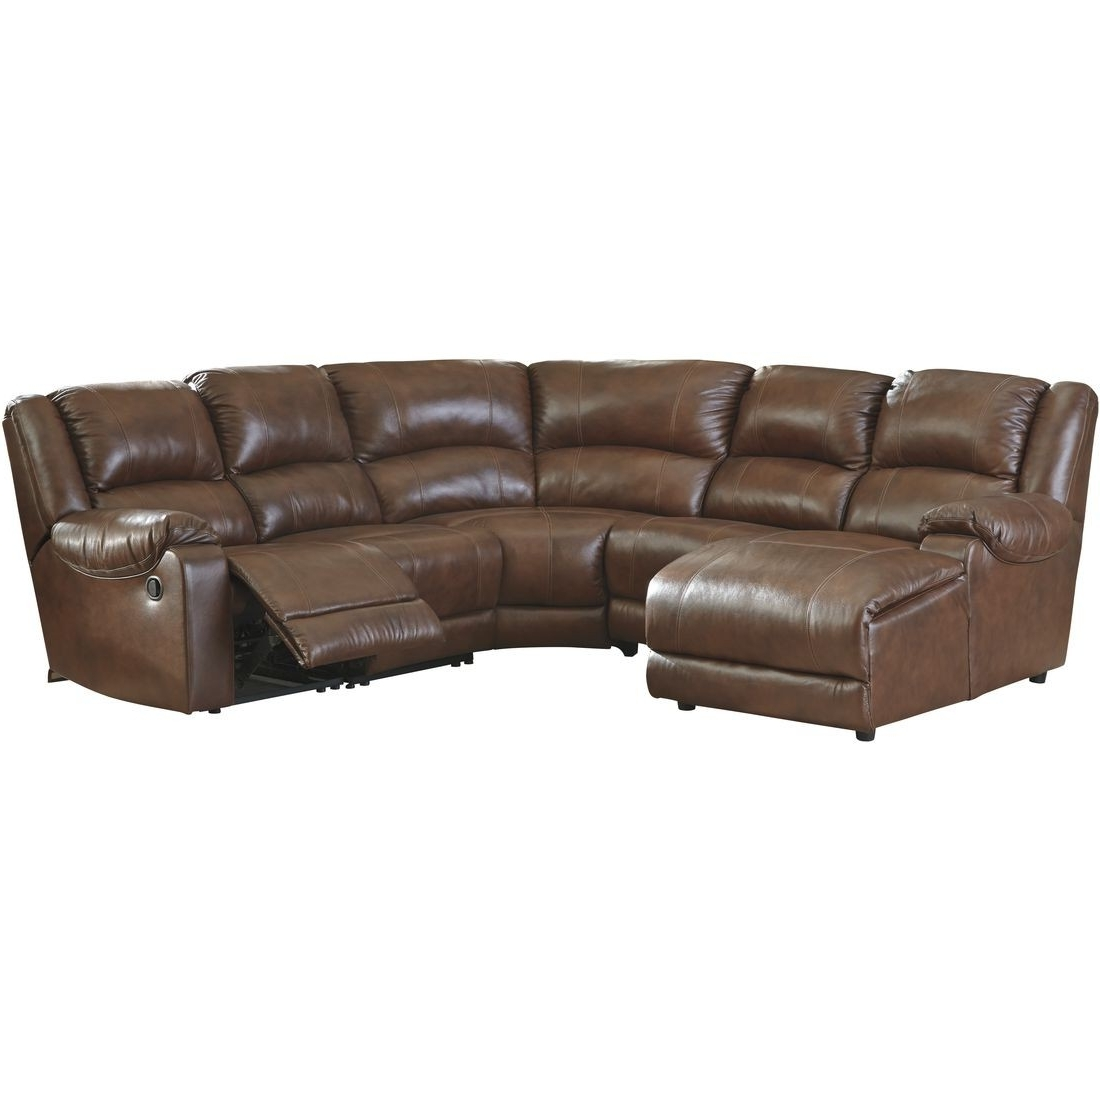 Ashley Furniture Billwedge Sectional Sofa In Canyon (View 9 of 15)